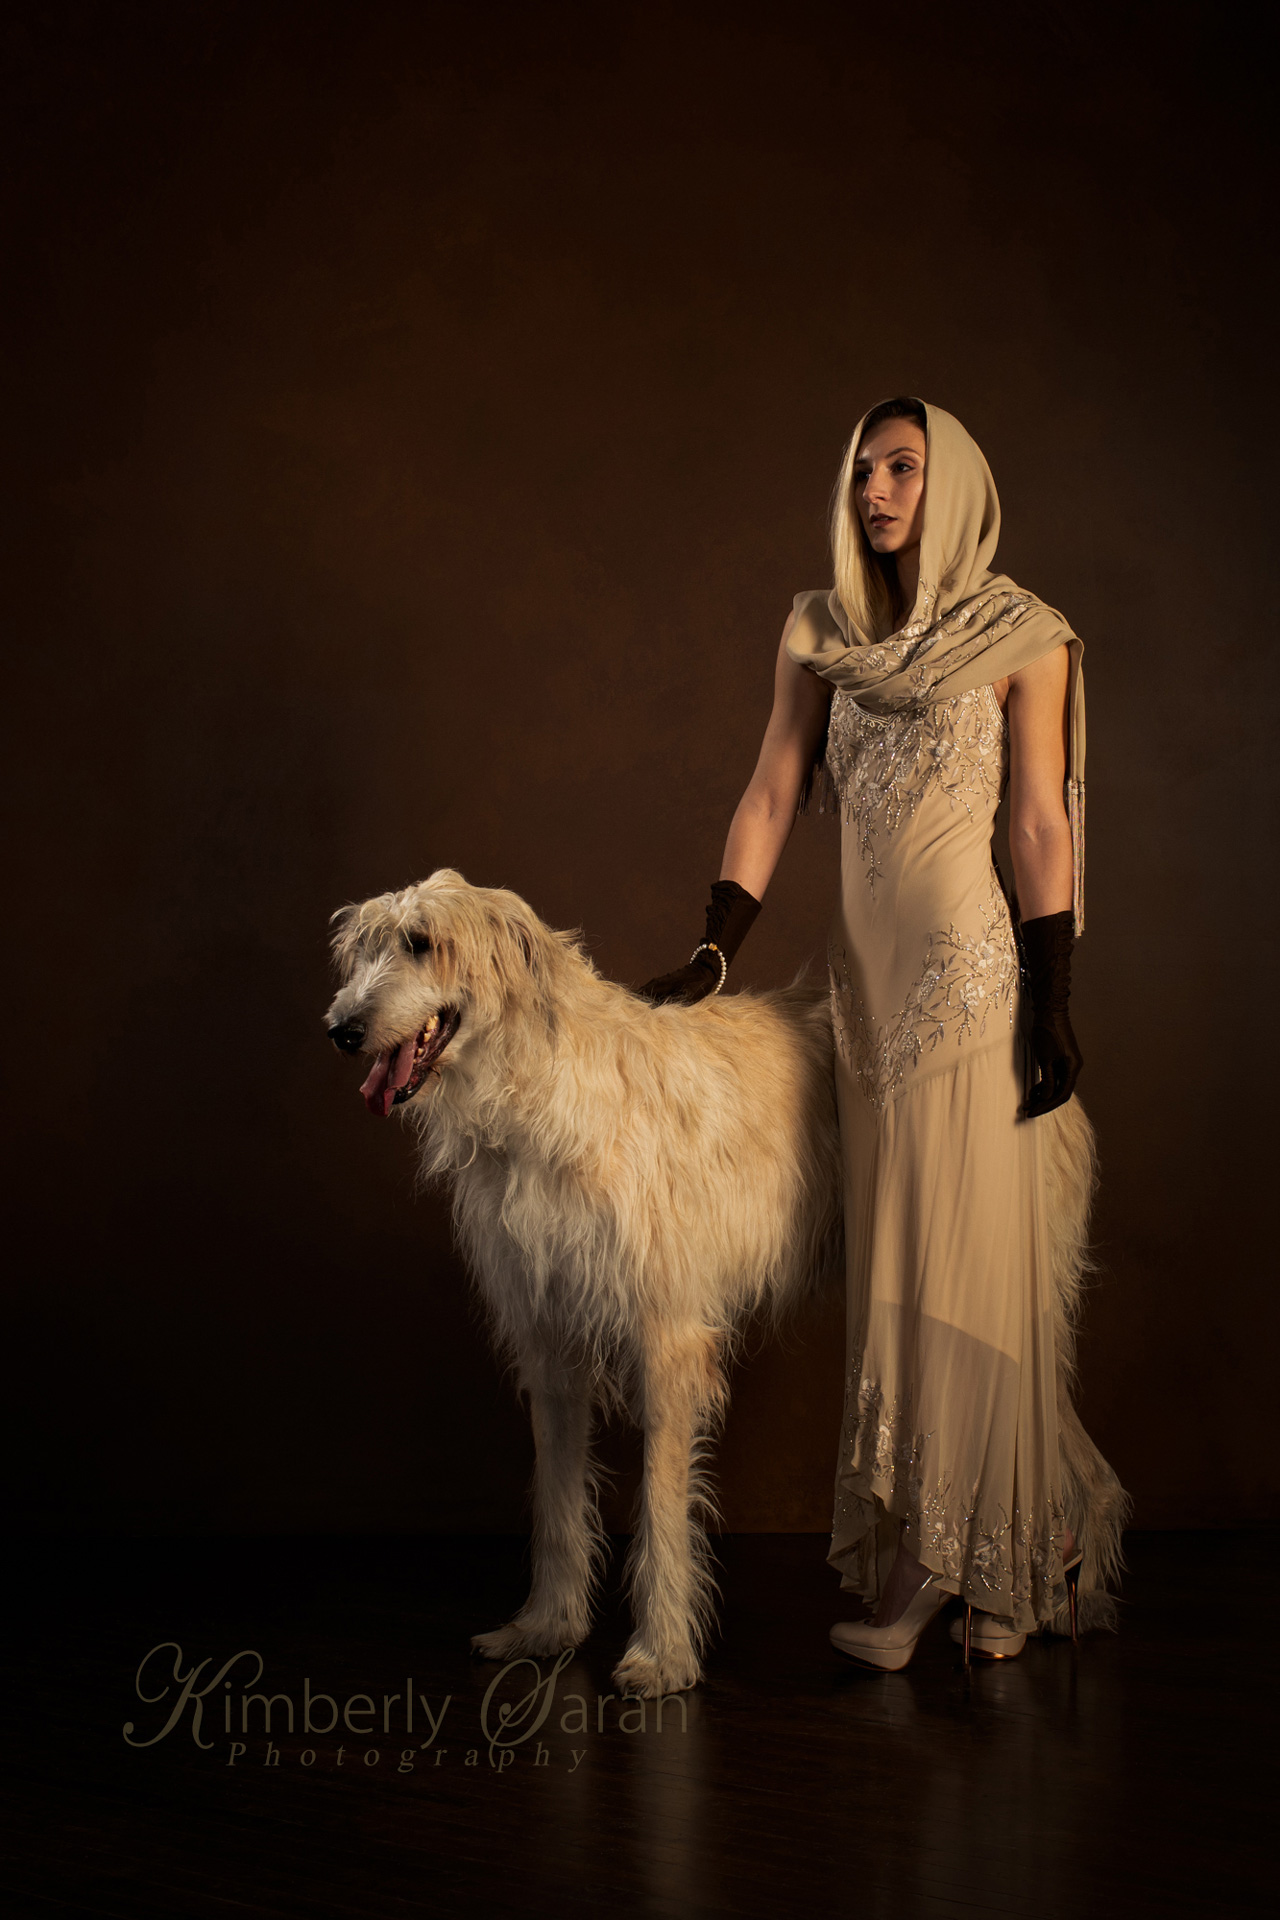 1920s fashion, irish wolfhound, kimberly sarah photography, dog photography